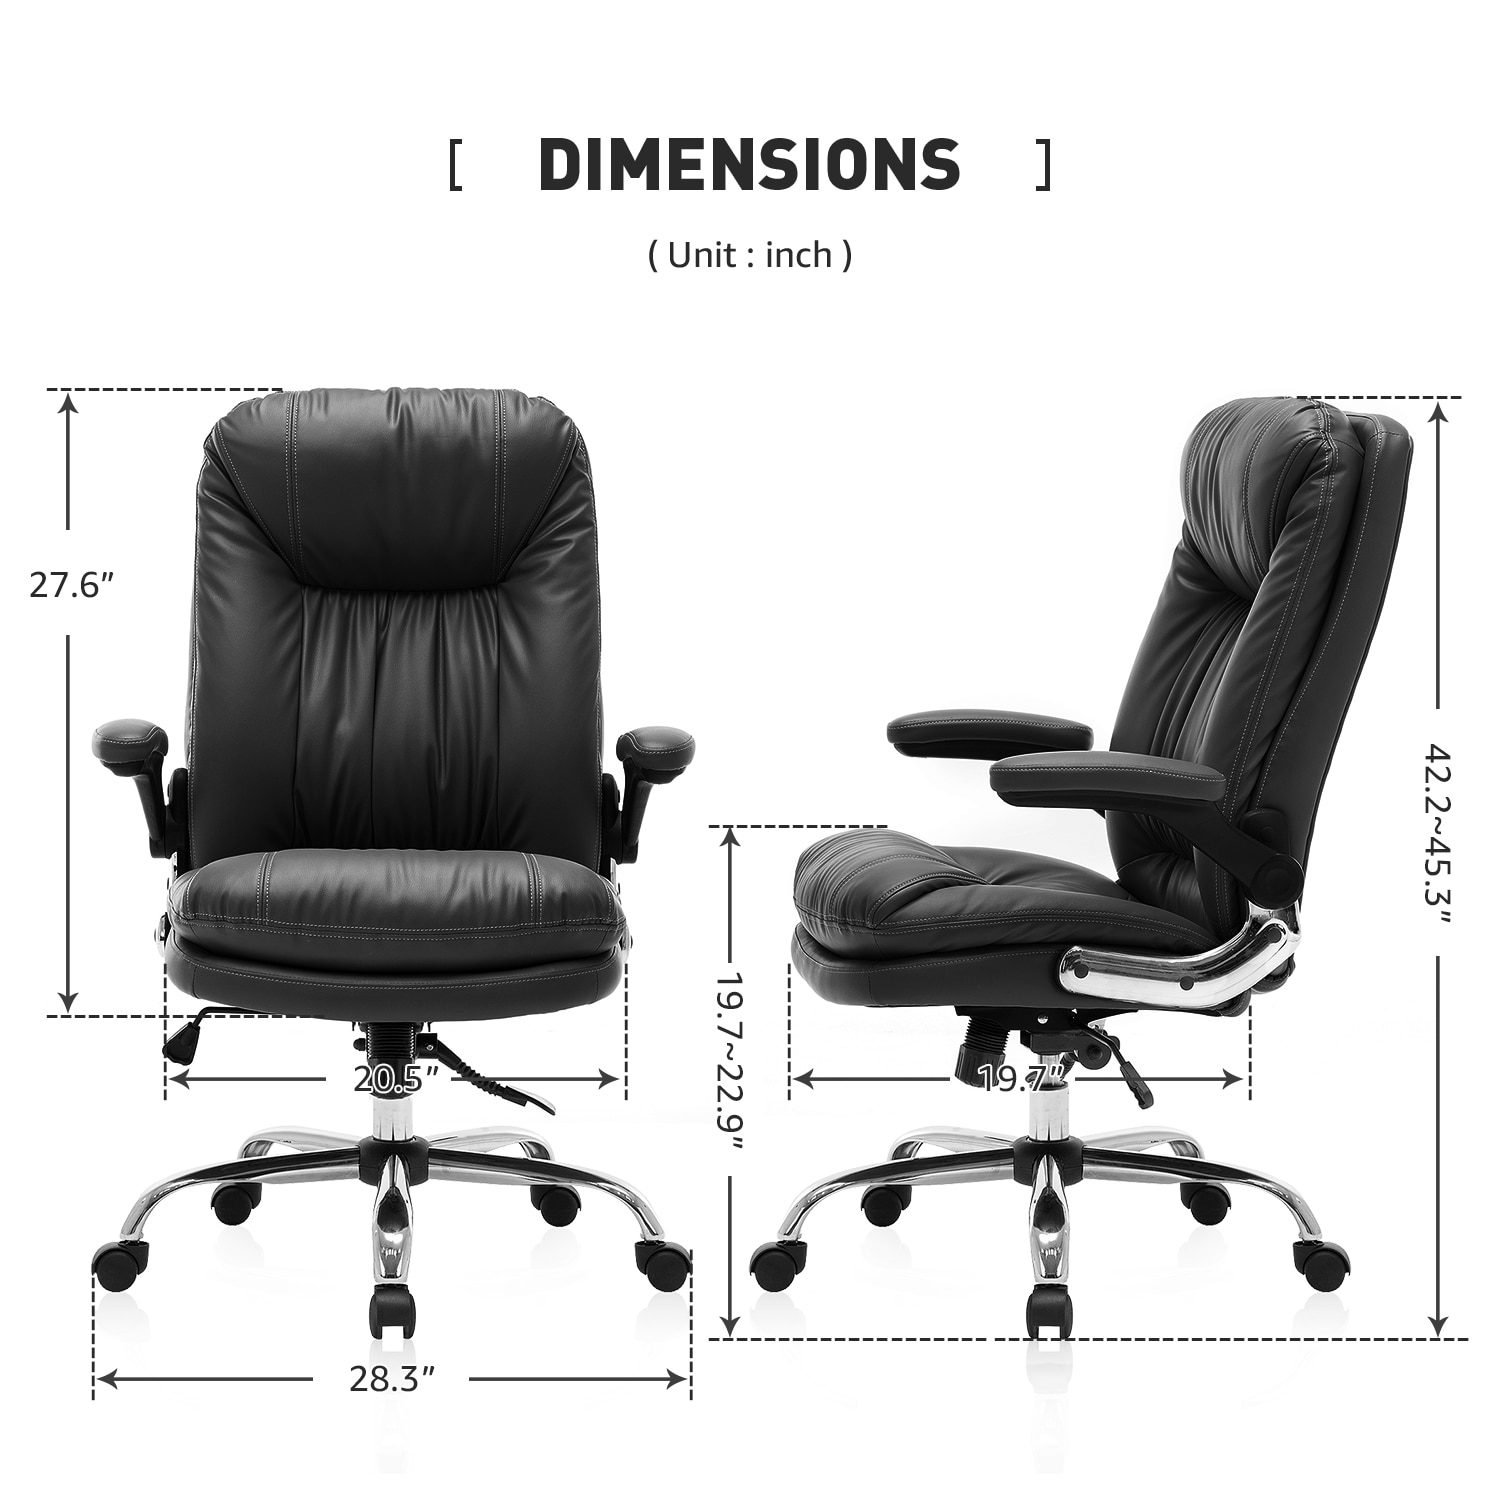 Hb4d8dca6615a4a418529ffc95916618dr - Yamasoro Ergonomic Office chair Faux PU Leather Chair Executive Computer Desk Chairs Managerial Executive Chairs